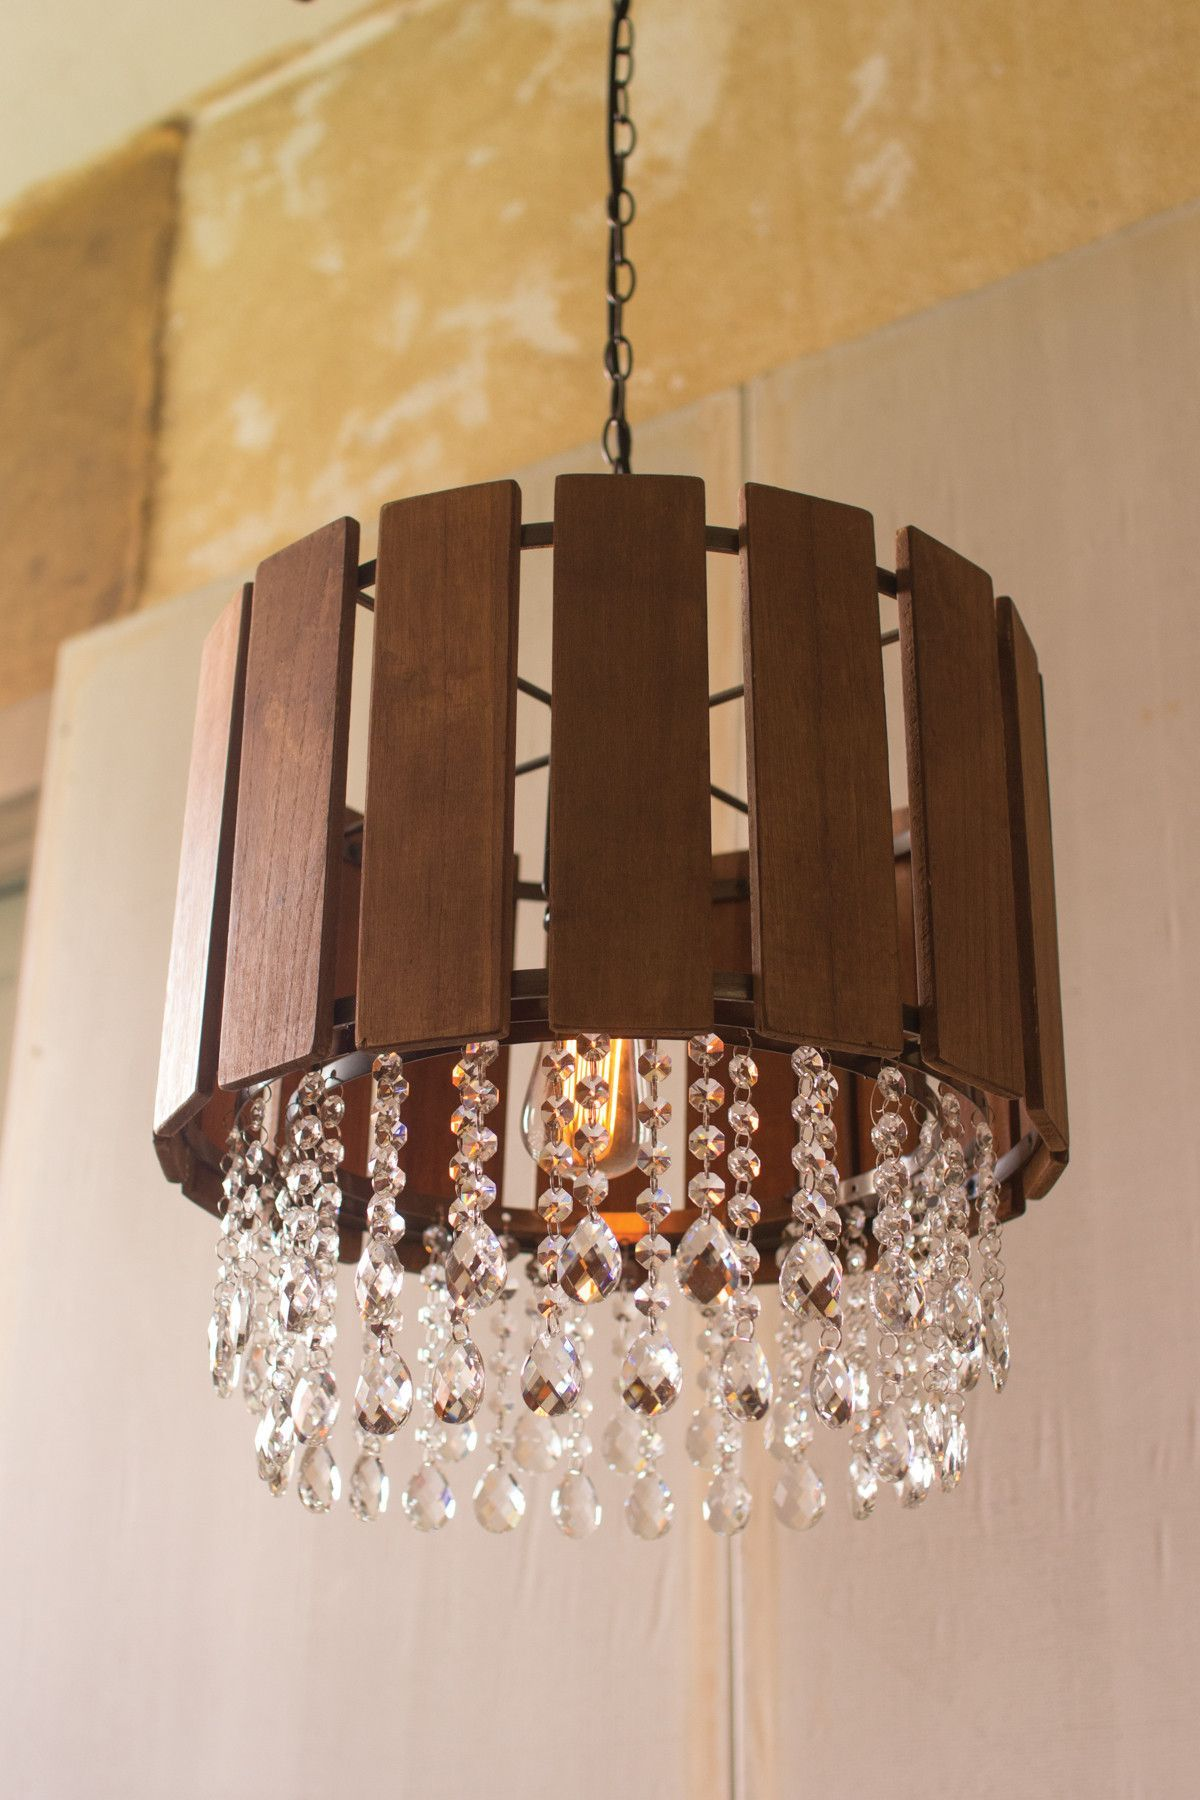 Slat wood pendant light w glass gems pendants products and gems